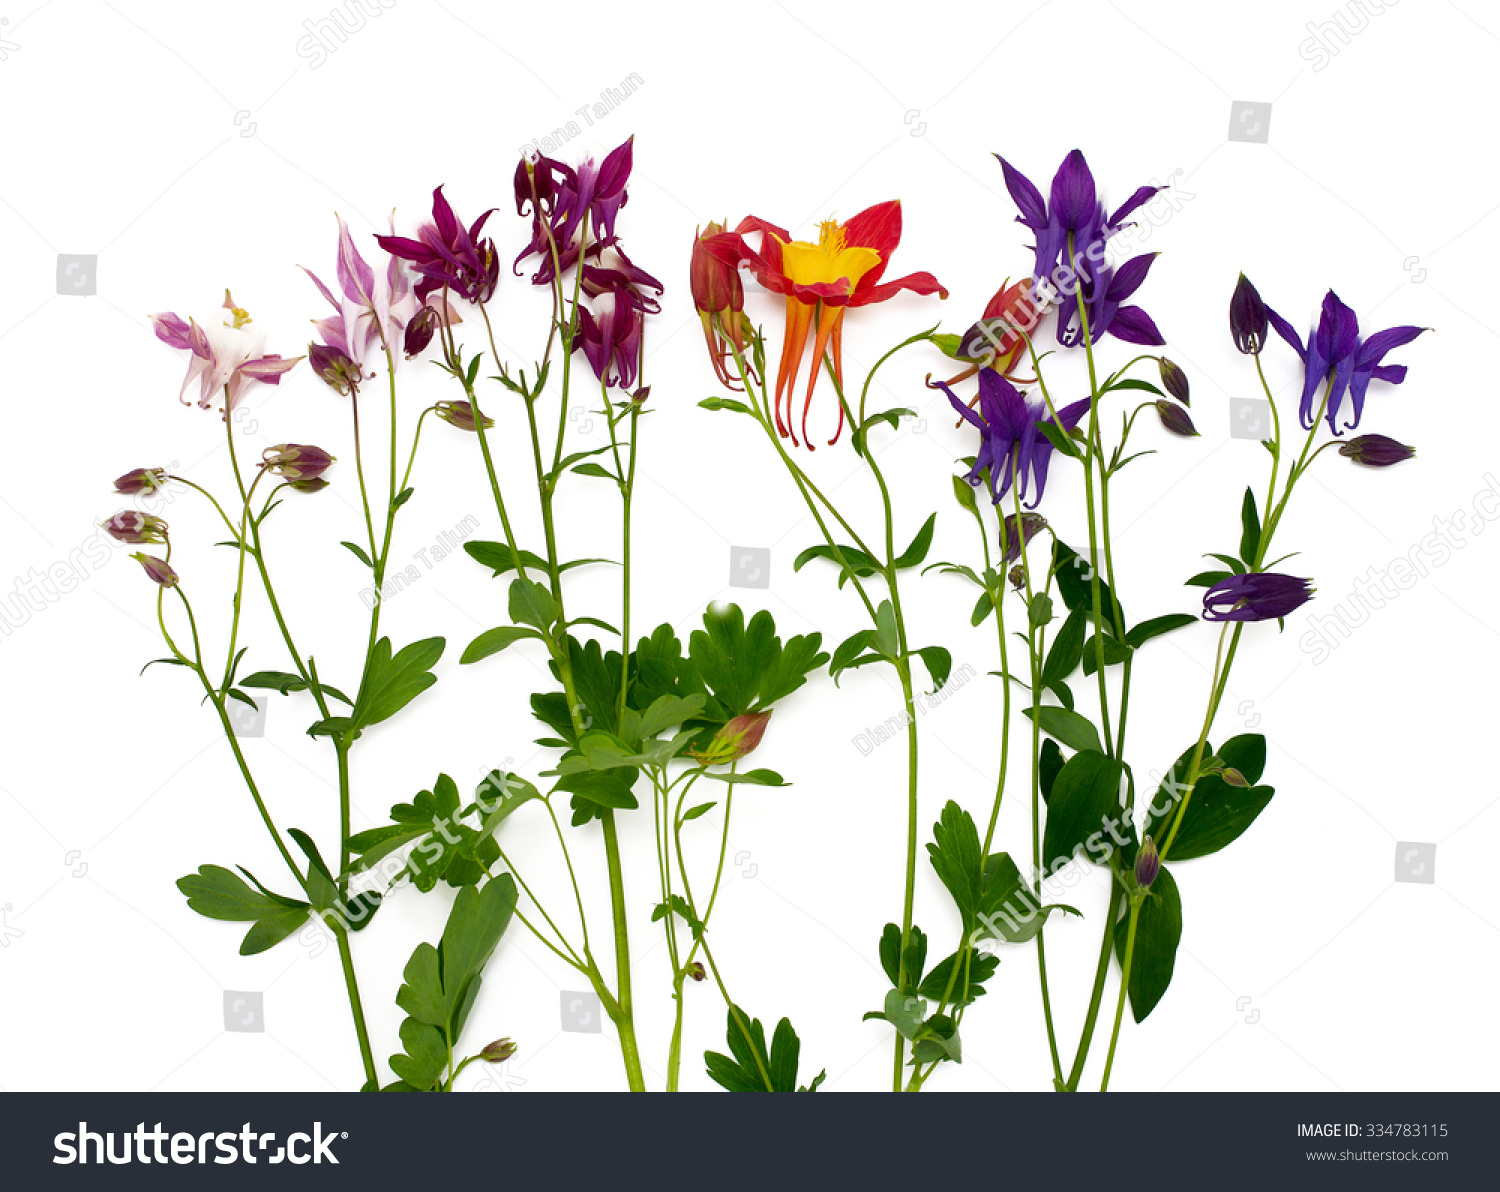 Columbine flowers different colors over white stock photo edit now columbine flowers of different colors over white izmirmasajfo